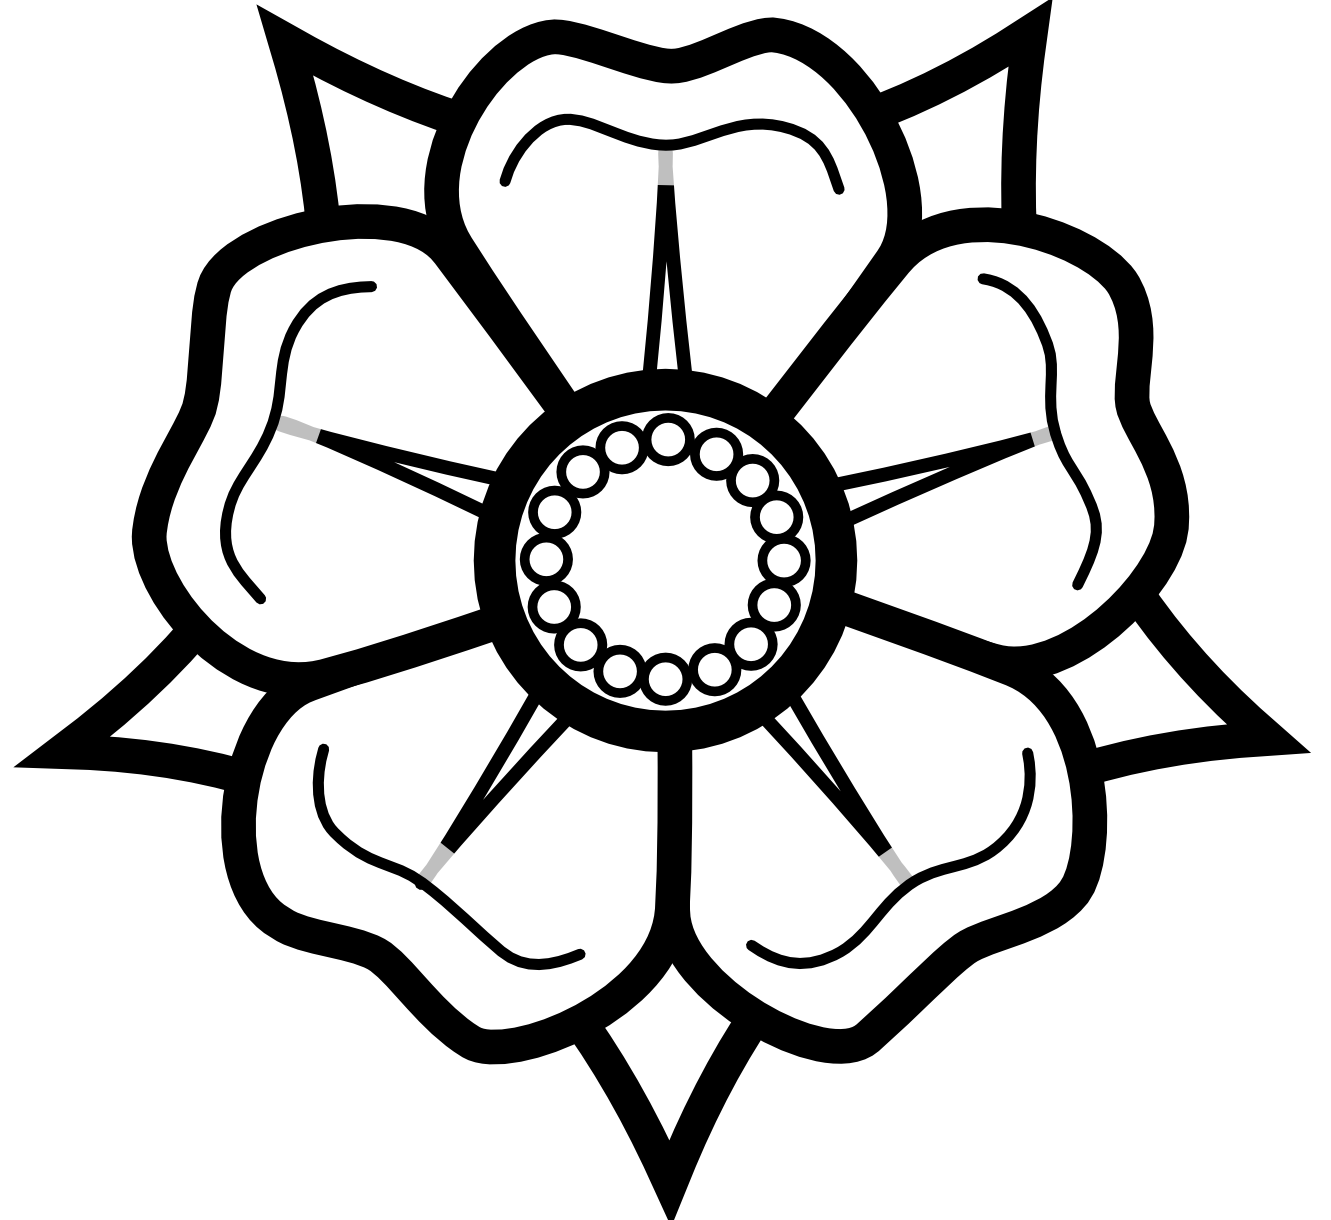 Flower clipart bw svg freeuse stock Flower Black And White Transparent PNG Pictures - Free Icons and PNG ... svg freeuse stock